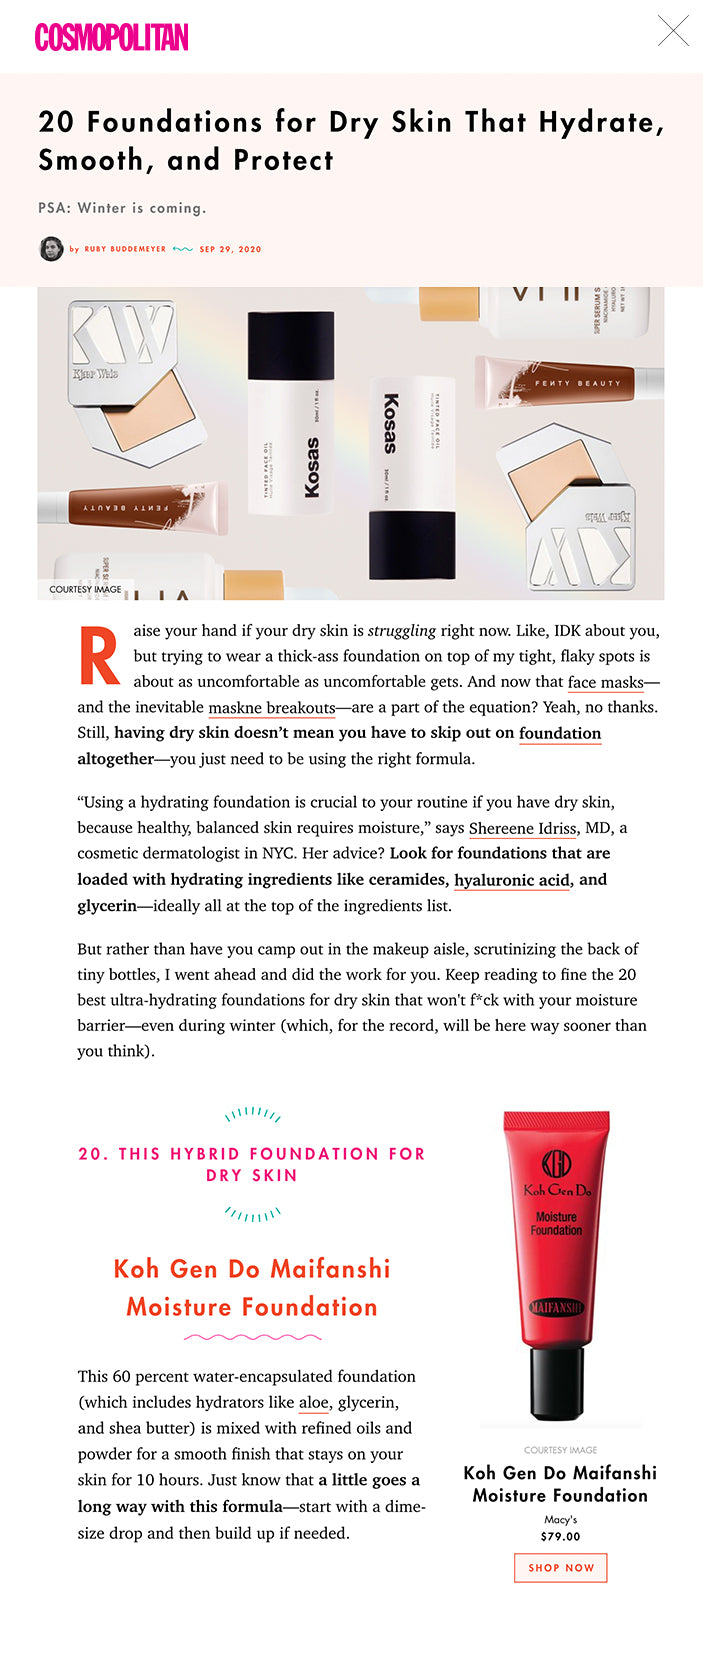 "20 Foundations for Dry Skin That Hydrate, Smooth, and Protect PSA: Winter is coming.   by RUBY BUDDEMEYER  SEP 29, 2020 foundations for dry skinCOURTESY IMAGE Raise your hand if your dry skin is struggling right now. Like, IDK about you, but trying to wear a thick-ass foundation on top of my tight, flaky spots is about as uncomfortable as uncomfortable gets. And now that face masks—and the inevitable maskne breakouts—are a part of the equation? Yeah, no thanks. Still, having dry skin doesn't mean you have to skip out on foundation altogether—you just need to be using the right formula.  ""Using a hydrating foundation is crucial to your routine if you have dry skin, because healthy, balanced skin requires moisture,"" says Shereene Idriss, MD, a cosmetic dermatologist in NYC. Her advice? Look for foundations that are loaded with hydrating ingredients like ceramides, hyaluronic acid, and glycerin—ideally all at the top of the ingredients list.  But rather than have you camp out in the makeup aisle, scrutinizing the back of tiny bottles, I went ahead and did the work for you. Keep reading to fine the 20 best ultra-hydrating foundations for dry skin that won't f*ck with your moisture barrier—even during winter (which, for the record, will be here way sooner than you think).  more from cosmopolitan This content is imported from {embed-name}. You may be able to find the same content in another format, or you may be able to find more information, at their web site.   COURTESY IMAGE Black Opal Skin Perfecting Stick Foundation SPF 15 walmart.com $9.93 SHOP NOW 1. THIS STICK FOUNDATION FOR DRY SKIN Black Opal Skin Perfecting Stick Foundation SPF 15 Is there anything more convenient than a foundation stick? Nope, and this hydrating, easy-to-apply formula from Black Opal is no exception. It's spiked with vitamins C and E for a nice dose of skin-protecting antioxidants, and it leaves your dry skin with a soft, velvety finish that doesn't cake or settle into fine lines. That's what I call a win-win, y'all.   COURTESY IMAGE Fenty Beauty Pro Filt'r Hydrating Longwear Foundation Sephora $36.00 SHOP NOW 2. THIS LONG-WEAR FOUNDATION FOR DRY SKIN Fenty Beauty Pro Filt'r Hydrating Longwear Foundation I get it: Sometimes the lighter-weight foundations for dry skin don't last as long as their matte (albeit, drying) counterparts. That's where this grapeseed oil-spiked foundation comes into play—you can expect medium-to-full coverage that won't smear or fade halfway through the day. And did I mention it comes in 50 skin-flattering shades? 'Cause it most certainly does.   COURTESY IMAGE Ilia Super Serum Skin Tint SPF 40 ILIA Beauty $46.00 SHOP NOW 3. THIS SKIN TINT FOR DRY SKIN Ilia Super Serum Skin Tint SPF 40 Perfect for anyone who wants a lighter, more natural-looking finish, this subtle tint from Ilia blasts your skin with hydrators like squalane, hyaluronic acid, and niacinamide. Give the bottle a nice little shake and smooth a few drops across your face for a subtle glow. And, psst: This one's also got SPF 40 in it for extra protection.   COURTESY IMAGE ColourPop Pretty Fresh Foundation Ulta Beauty $16.00 SHOP NOW 4. THIS MEDIUM-COVERAGE FOUNDATION FOR DRY SKIN ColourPop Pretty Fresh Foundation Blend this oil- and fragrance-free foundation on your skin, and you'll immediately see how soft and silky it feels. That's thanks to the coconut water and hyaluronic acid in the formula, which come together to moisturize even the driest of dry skin. Not bad for less than $12, IMO.   COURTESY IMAGE Uoma Beauty Say What Foundation Lookfantastic $39.30 SHOP NOW 5. THIS HYDRATING MATTE FOUNDATION FOR DRY SKIN Uoma Beauty Say What Foundation Listen, I'll be the first person to tell you that dry skin types don't typically mesh well with matte foundations. This top-rated formula from Uoma beauty is an exception though, since it's loaded with hydrating berry extract and soothing thistle extract to keep your skin from flaking off. It also comes in a whopping 51 shades, feels surprisingly weightless, and softens the appearance of pores and fine lines.   COURTESY IMAGE Kosas Tinted Face Oil Foundation Sephora $42.00 SHOP NOW 6. THIS FACE OIL FOUNDATION FOR DRY SKIN Kosas Tinted Face Oil Foundation This clean, ultra-sheer formula from Kosas is basically like a serum-foundation hybrid. It's super easy to apply—just tap it into your skin with your (clean) fingertips—and it leaves a soft and silky finish, courtesy of the formula's six botanical oils (think: avocado, jojoba, and raspberry oils). Think of this bb as the perfect everyday foundation for people who hate foundation.   COURTESY IMAGE Cover FX Luminous Tinted Moisturizer CoverFX $39.00 SHOP NOW 7. THIS GLOWY FOUNDATION FOR DRY SKIN Cover FX Luminous Tinted Moisturizer My favorite thing about this tinted moisturizer is that it makes my skin look so effing dewy. All I need is a tiny dollop and the hydrating formula (shout out to the bamboo, lotus flower, and water lily) evens out my skin texture without completely masking it. It's almost like my skin but a tad—or, fine, a lot—better.   COURTESY IMAGE Black Radiance True Complexion Bb Cream SPF 15 amazon.com SHOP NOW 8. THIS BB CREAM FOR DRY SKIN Black Radiance True Complexion BB Cream SPF 15 This BB cream acts as a solid—and hydrating!—base when you wear it on its own (kinda like a soft IG filter). Layer it with your go-to foundation, though, and you'll love how seamlessly it blends. But don't just take my word for it—peek through the over 3K five-star reviews on Amazon and you'll get the hype.   COURTESY IMAGE BareMinerals Complexion Rescue Hydrating Foundation Stick Broad Spectrum SPF 25 Sephora SHOP NOW 9. THIS SPF FOUNDATION FOR DRY SKIN BareMinerals Complexion Rescue Hydration Foundation Stick with SPF 25 Not only is this stick foundation for dry skin super easy to apply, but it's also formulated with effective hydrators like mineral-rich volcanic seawater and red algae. And, thanks to its stick formula, it can easily be blended across your skin with (clean) fingers when you have absolutely no time to sit down and do a full face.   COURTESY IMAGE Clarins Skin Illusion Natural Hydrating Foundation ulta.com $100.00 SHOP NOW 10. THIS FOUNDATION SERUM FOR DRY SKIN Clarins Skin Illusion Natural Hydrating Foundation The perfect middle ground between skincare and makeup, this foundation serum from Clarins offers lightweight-yet-buildable coverage that won't dry you out. Tap it into your skin with your fingertips for a subtle look, or build it out with a makeup sponge—either way, you'll be getting a nice dose of moisturizing ingredients like red jania, Mary's thistle oil, and more.   COURTESY IMAGE Laura Mercier Tinted Moisturizer Natural Skin Perfector Broad Spectrum SPF 30 Sephora $47.00 SHOP NOW 11. THIS TINTED MOISTURIZER FOR DRY SKIN Laura Mercier Tinted Moisturizer Natural Skin Perfector Broad Spectrum SPF 30 There's a reason this tinted moisturizer has been one of my favorite beauty products for literally years: It's suuuuuper comfortable (regardless of how many layers you blend on), it's got SPF 30, and it's crazy hydrating (which, like, is definitely a requirement for tinted moisturizers). Thanks to a blend of macadamia and kukui seed oils, you can expect your dry skin to feel soft and dewy when you're wearing this foundation.   COURTESY IMAGE Kjaer Weis Cream Foundation Dermstore $68.00 SHOP NOW 12. THIS CREAM FOUNDATION FOR DRY SKIN Kjaer Weis Cream Foundation A creamy, hydrating foundation for dry skin that comes in next-level packaging? Uh, yeah, sold. Unlike the majority of semi-matte foundations that leave your skin extra dry, this formula is spiked with coconut oil, sweet almond seed oil, and jojoba seed oil, all of which work to soothe and moisturize your skin (flakes included).   COURTESY IMAGE Smashbox Studio Skin 15 Hour Hydrating Foundation Dermstore $36.00 SHOP NOW 13. THIS FULL-COVERAGE FOUNDATION FOR DRY SKIN Smashbox Studio Skin 15 Hour Hydrating Foundation Having dry skin doesn't mean you need to go for a light, subtle look with your foundation. If you're on the hunt for a full-coverage foundation that won't make your skin feel tight and flaky, you'll love this comfy formula from Smashbox. And hydrating ingredients like hyaluronic acid and vitamin E in the formula will make you feel real good about this purchase.   COURTESY IMAGE Neutrogena Hydro Boost Hydrating Tint amazon.com $13.87 SHOP NOW 14. THIS ULTRA-HYDRATING FOUNDATION FOR DRY SKIN Neutrogena Hydro Boost Hydrating Tint Just like Neutrogena's cult-favorite Hydro Boost Water Gel Moisturizer, the hero ingredient in this dry-skin foundation is hyaluronic acid, which delivers (and traps!) a huge dose of hydration into your skin every time you apply it. Pro tip: Layer this foundation over the moisturizer for a truly hydrating experience.   COURTESY IMAGE CoverGirl + Olay Simply Ageless Instant Wrinkle Defying Foundation amazon.com $12.18 SHOP NOW 15. THIS FOUNDATION FOR DRY SKIN AND FINE LINES CoverGirl + Olay Simply Ageless Instant Wrinkle Defying Foundation A collab between two drugstore staples, this foundation from CoverGirl and Olay is formulated to literally glide over fine lines and wrinkles (see: the opposite of settling in and caking). And thanks to the formula's hyaluronic acid and vitamin C, it's also 100 percent dry-skin friendly.   COURTESY IMAGE It Cosmetics CC+ Cream with SPF 50+ itcosmetics.com $39.50 SHOP NOW 16. THIS LIGHTWEIGHT CC CREAM FOR DRY SKIN It Cosmetics CC+ Cream with SPF 50+ This subtle foundation from It Cosmetics not only hydrates your skin (shout out to the formula's hyaluronic acid, antioxidants, and peptides), but it also stays on—and looks freshly applied—all day long. Expect compliments on your skin every time you wear it.   COURTESY IMAGE Revlon PhotoReady Candid Natural Finish Anti-Pollution Foundation Ulta Beauty $5.49 SHOP NOW 17. THIS DRUGSTORE FOUNDATION FOR DRY SKIN Revlon PhotoReady Candid Natural Finish Anti-Pollution Foundation This drugstore foundation for dry skin literally feels like a moisturizer when you slather it on—courtesy of hydrating ingredients like vitamin E and aloe—and thanks to its anti–blue light properties (like titanium dioxide), it protects your dry skin from getting even drier while you stare at screens all day.   COURTESY IMAGE Tarte Shape Tape Hydrating Foundation tartecosmetics.com $39.00 SHOP NOW 18. THIS GEL FOUNDATION FOR DRY SKIN Tarte Cosmetics Shape Tape Hydrating Foundation The cool thing about this oil-free gel foundation (which comes in 25 shades, BTW) is that it leaves your skin with a smooth, buildable base that doesn't look even remotely cakey. And with ingredients like skin-plumping collagen and hydrating glycerin and hyaluronic acid, it soothes even the driest of skin types.   NORDSTROM.COM Charlotte Tilbury Light Wonder Youth Boosting Perfect Skin Foundation Sephora $46.00 SHOP NOW 19. THIS OIL-FREE FOUNDATION FOR DRY SKIN Charlotte Tilbury Light Wonder Youth Boosting Perfect Skin Foundation Looking for a featherweight foundation that gives your skin a healthy dose of hydration? Um, hi, meet this oil-free formula that's loaded with moisturizing glycerin and dimethicone, blends in for a flawless finish, and lasts for up to 18 hours.   COURTESY IMAGE Koh Gen Do Maifanshi Moisture Foundation Macy's $77.00 SHOP NOW 20. THIS HYBRID FOUNDATION FOR DRY SKIN Koh Gen Do Maifanshi Moisture Foundation This 60 percent water-encapsulated foundation (which includes hydrators like aloe, glycerin, and shea butter) is mixed with refined oils and powder for a smooth finish that stays on your skin for 10 hours. Just know that a little goes a long way with this formula—start with a dime-size drop and then build up if needed.  Related Story  Finally, Your Dry-as-Hell Skin Has Met Its Match RUBY BUDDEMEYER beauty editor Ruby is the beauty editor at Cosmopolitan, where she covers beauty across print and digital."